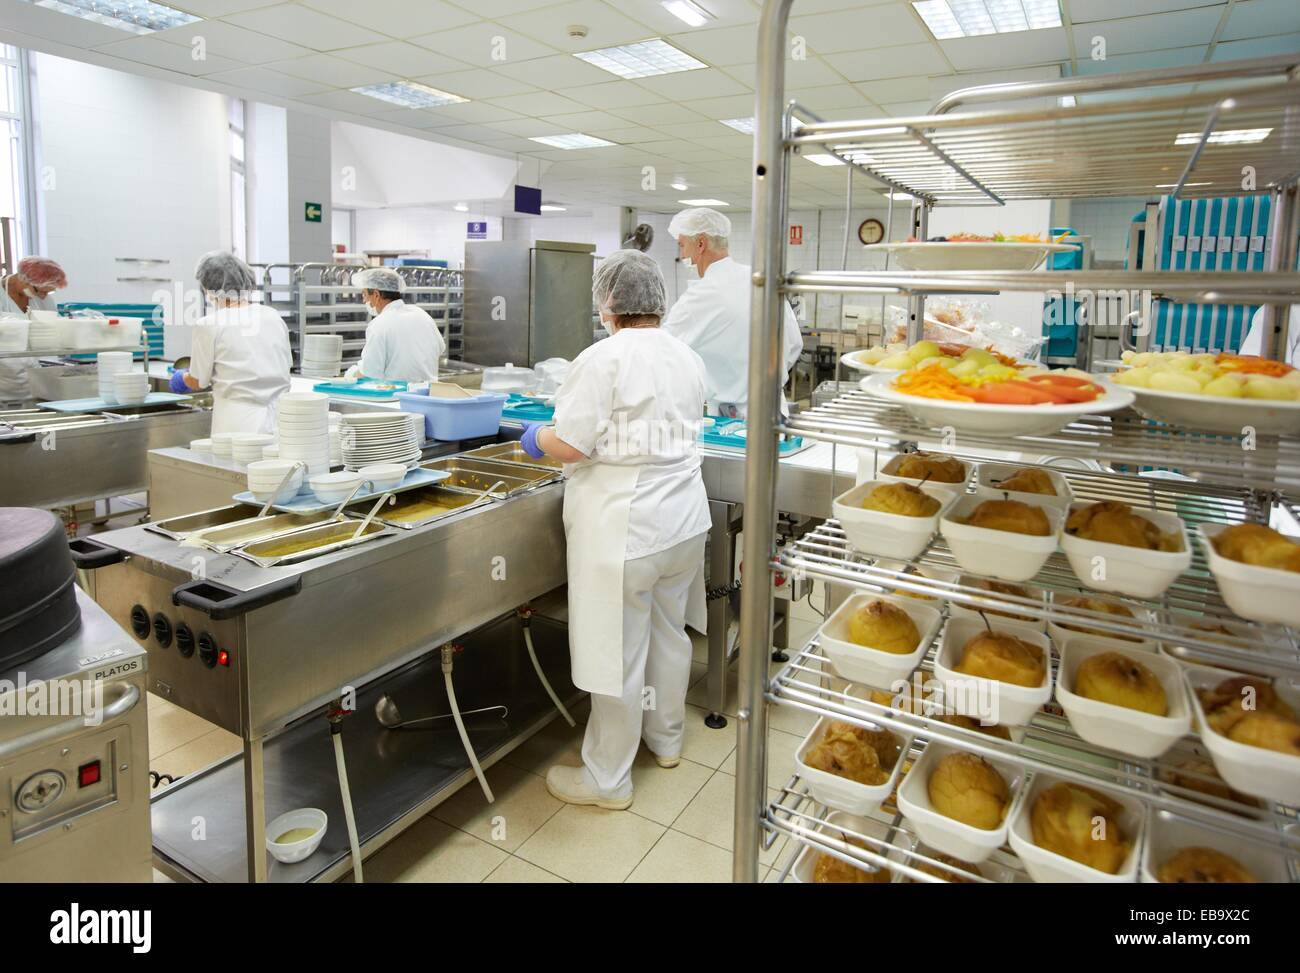 Food serving line hospital meal preparation kitchen hospital donostia san sebastian gipuzkoa basque country spain